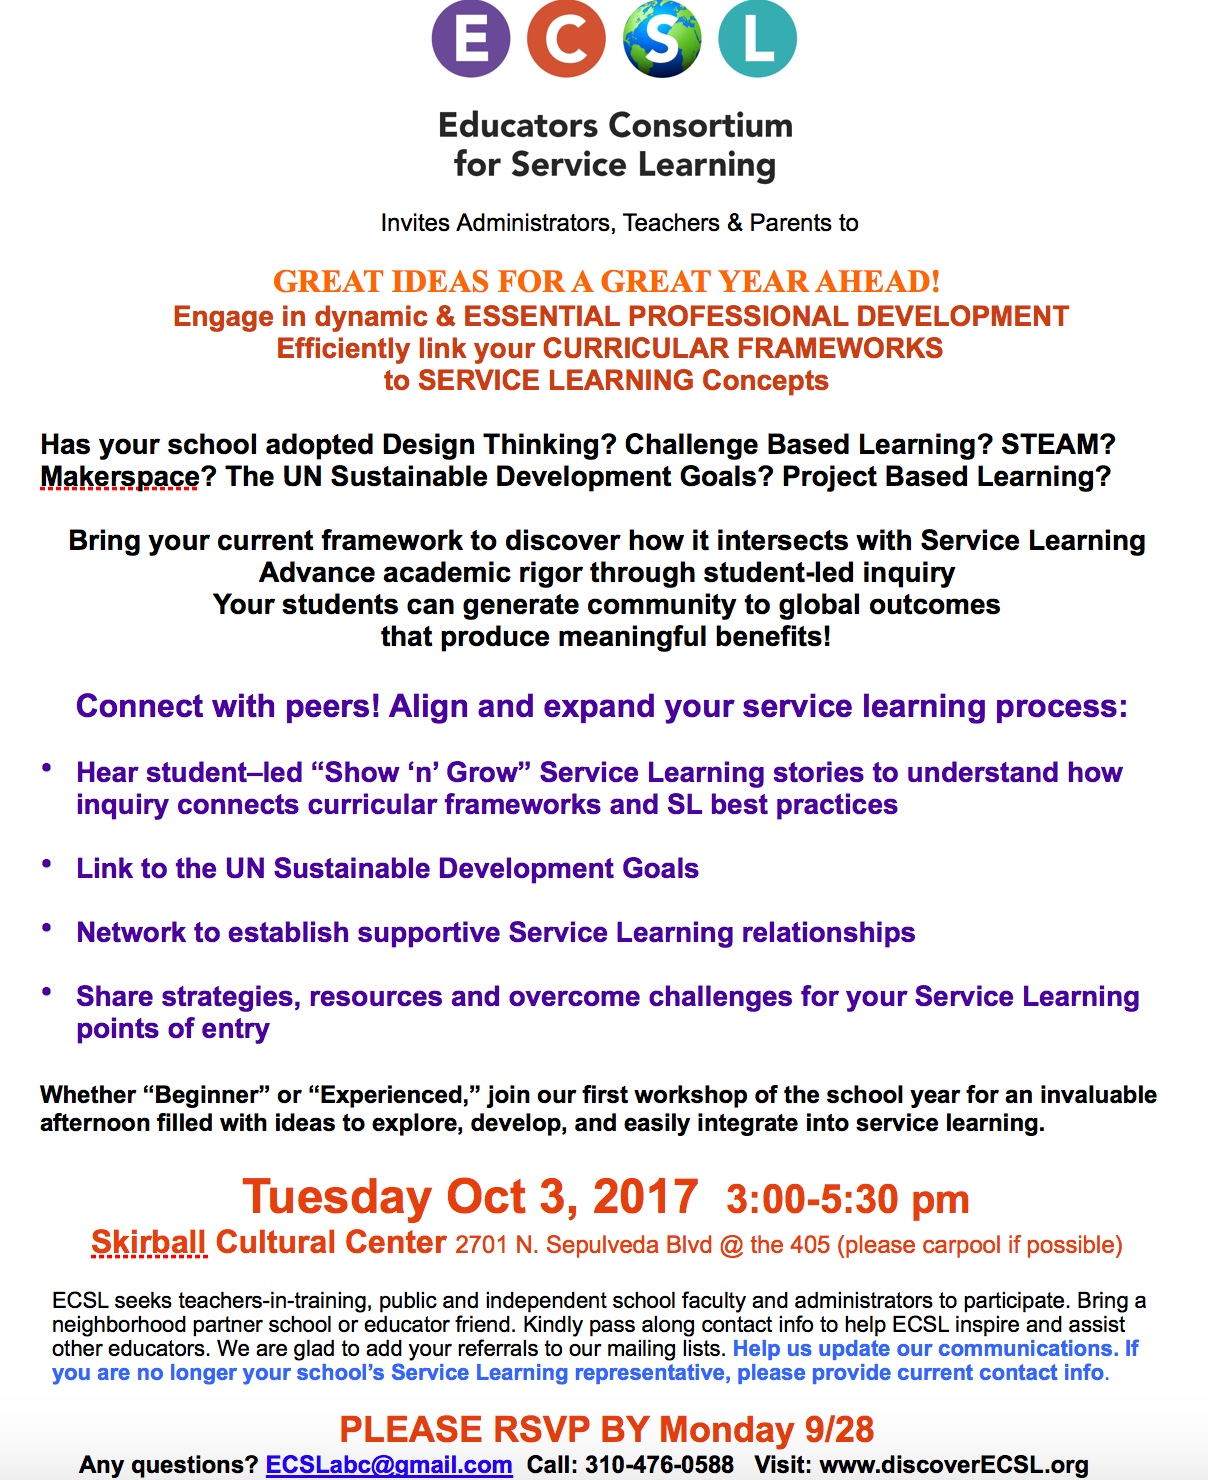 service learning news | discover ecsl